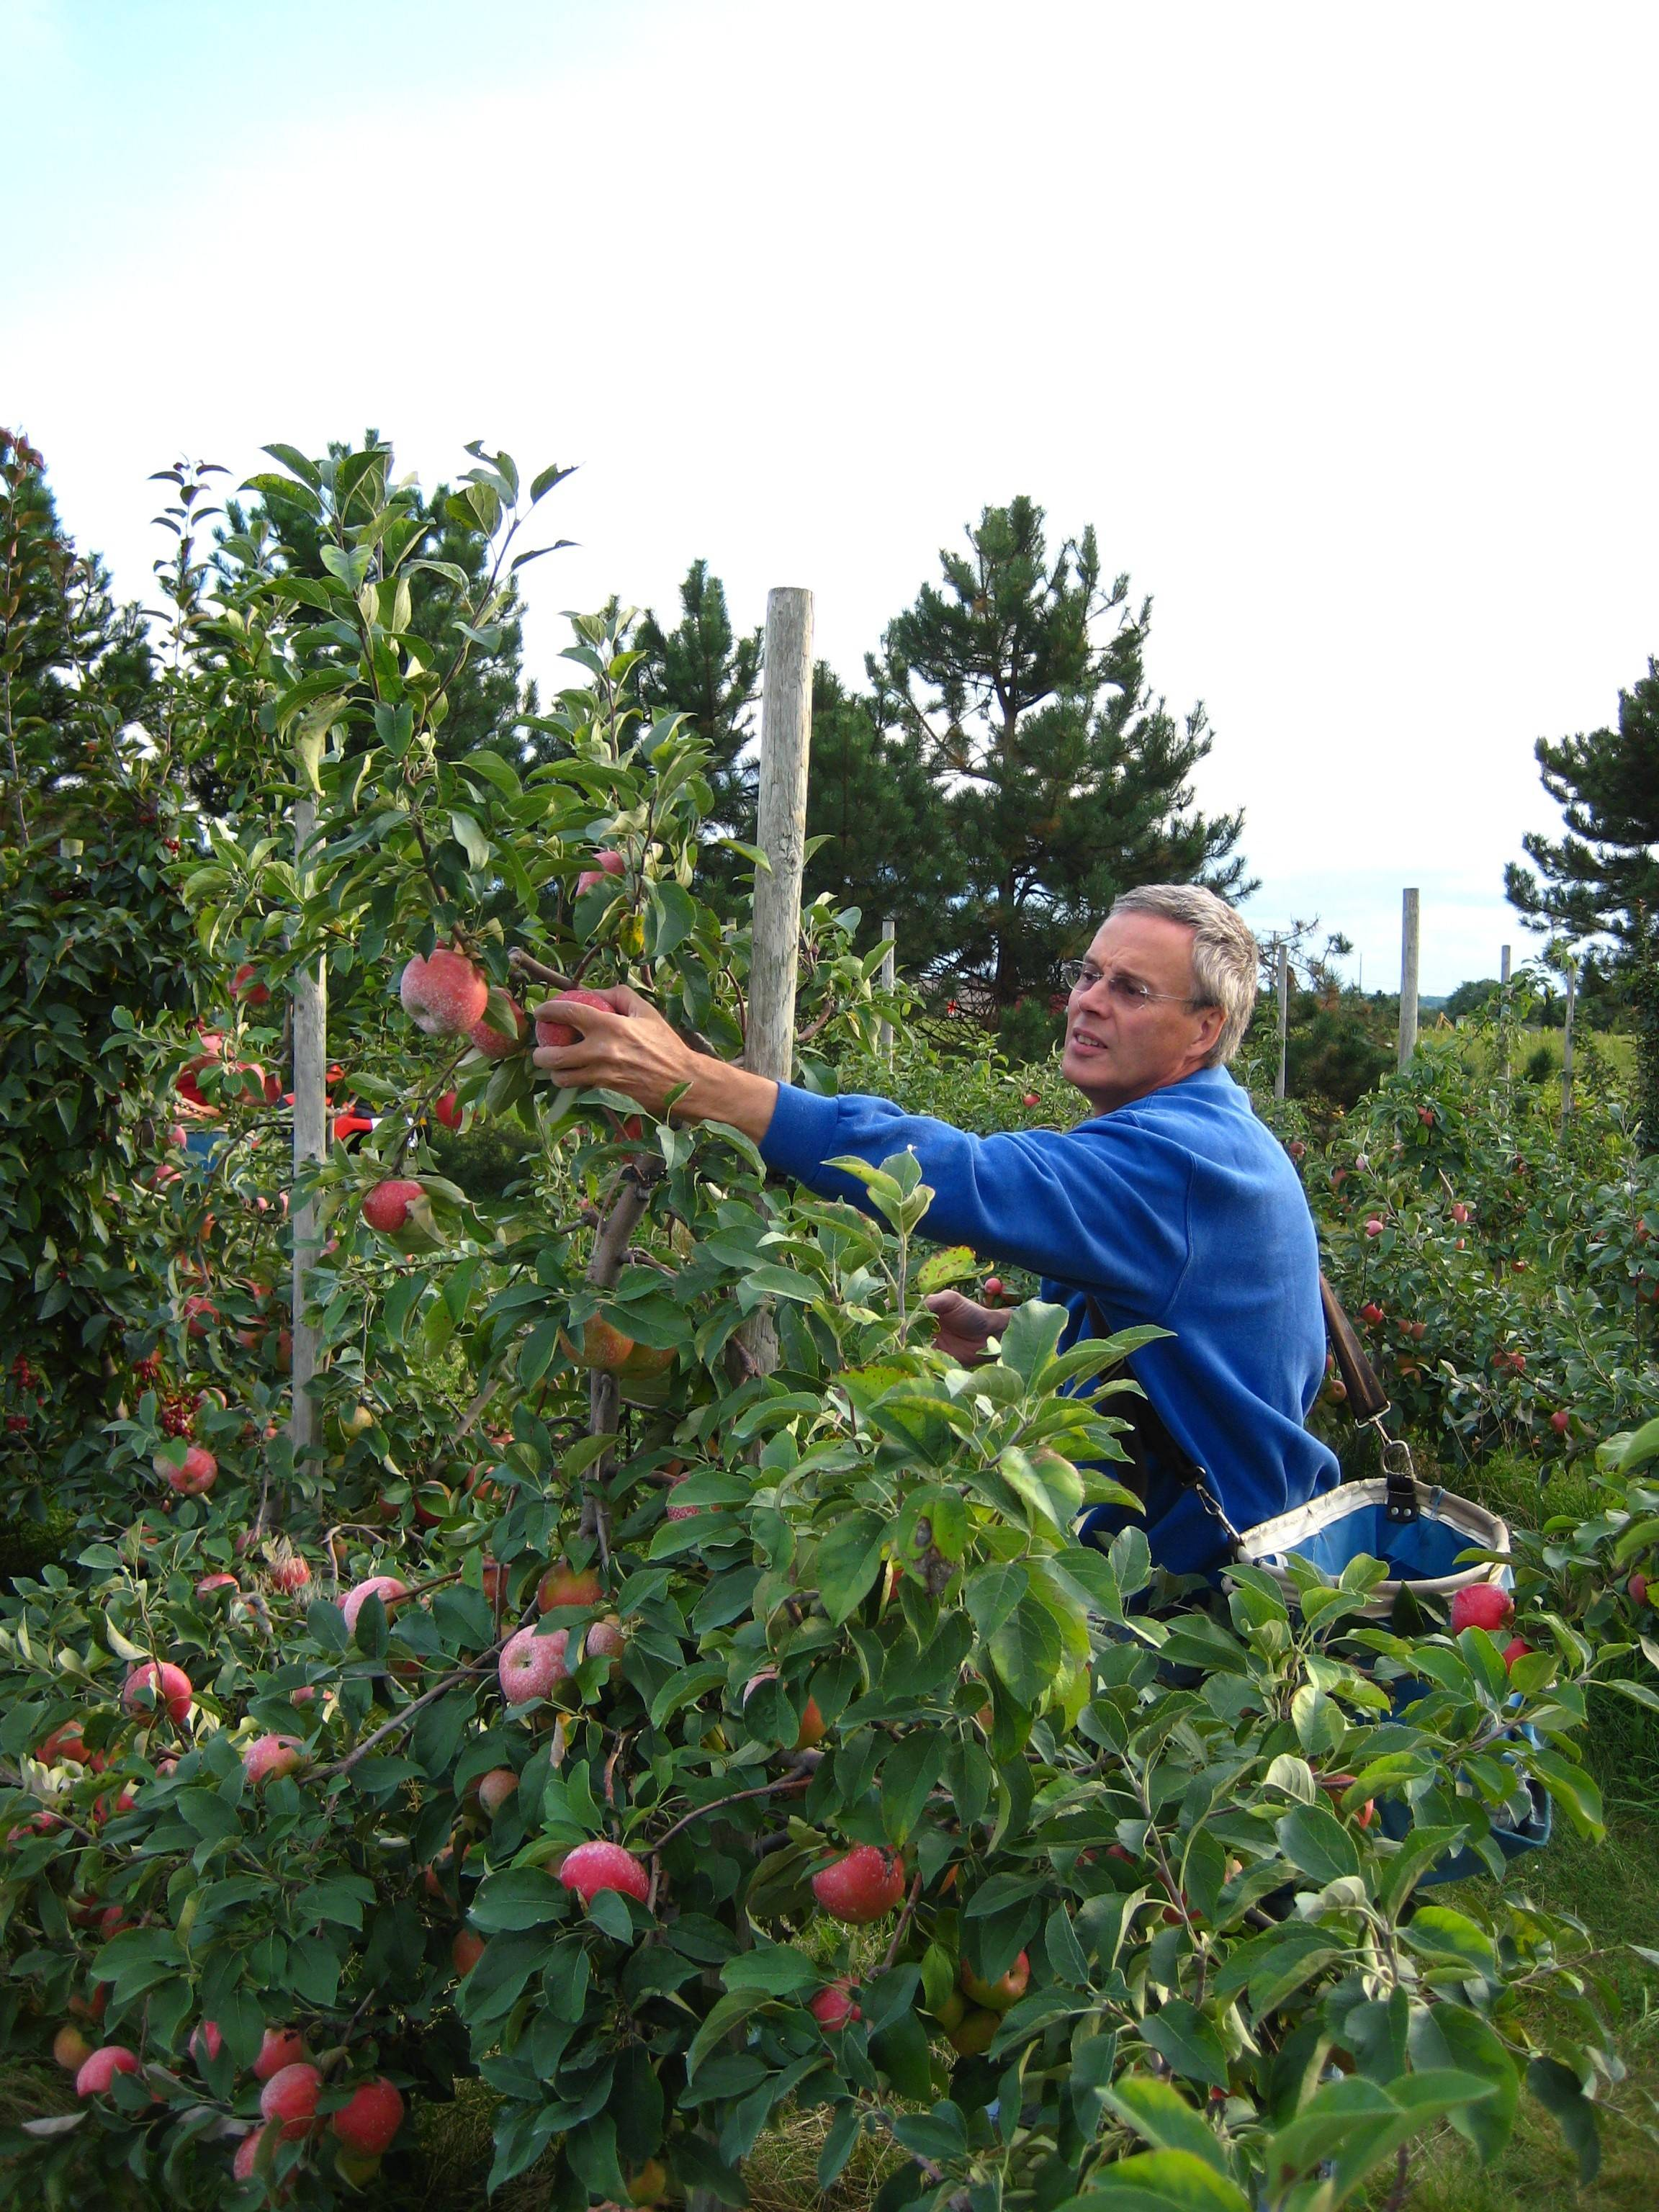 Apple-picking season will soon begin at Prairie Sky Orchard in Union.